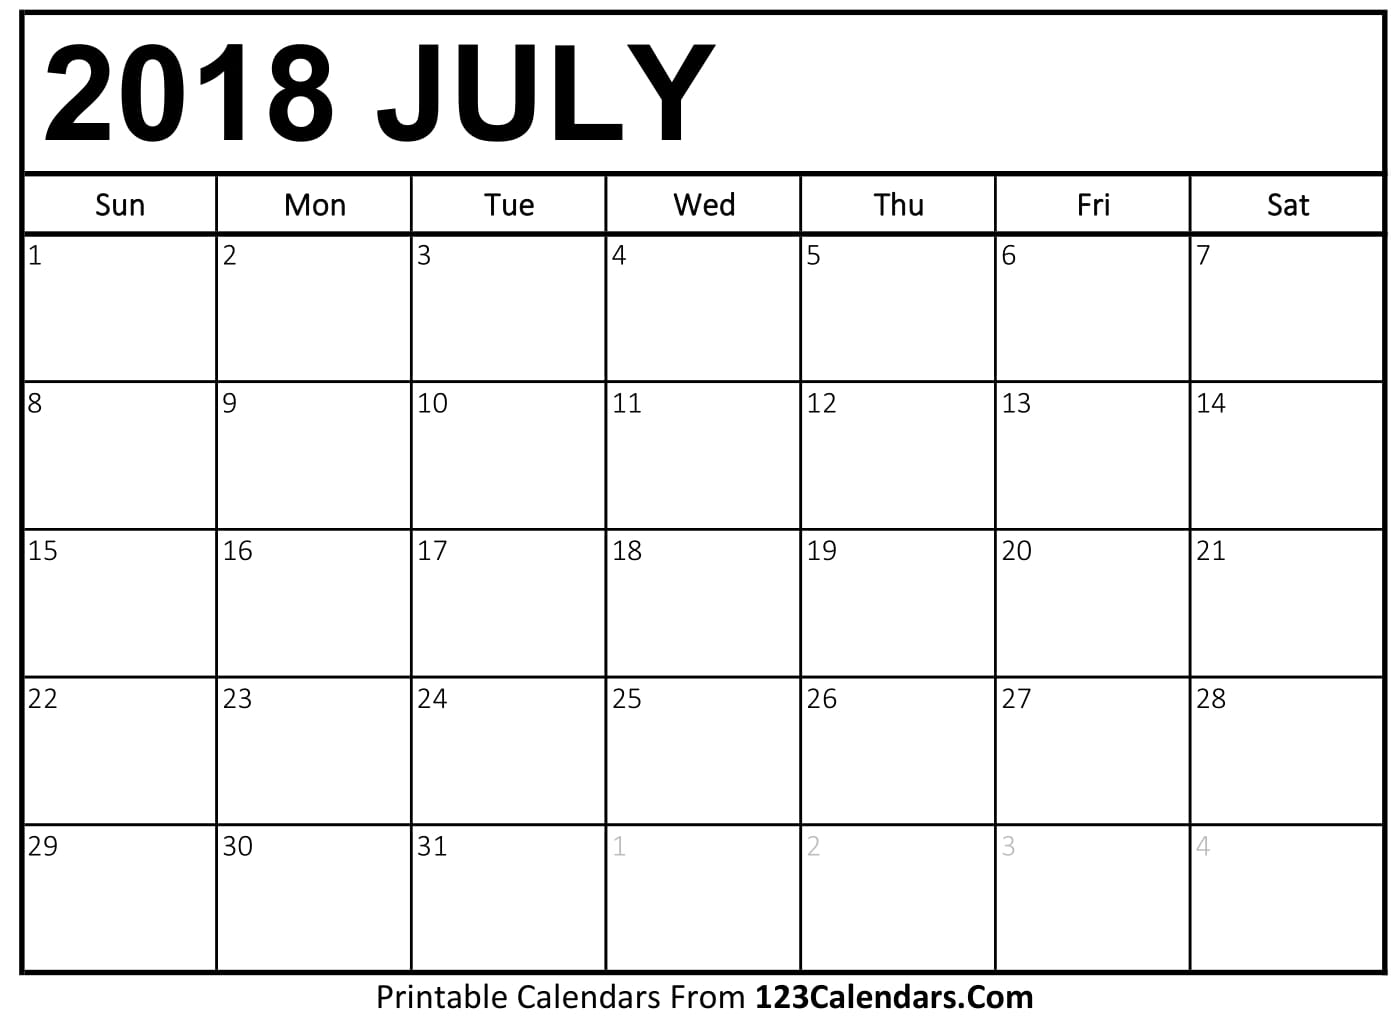 July 2018 Printable Calendar With Notes